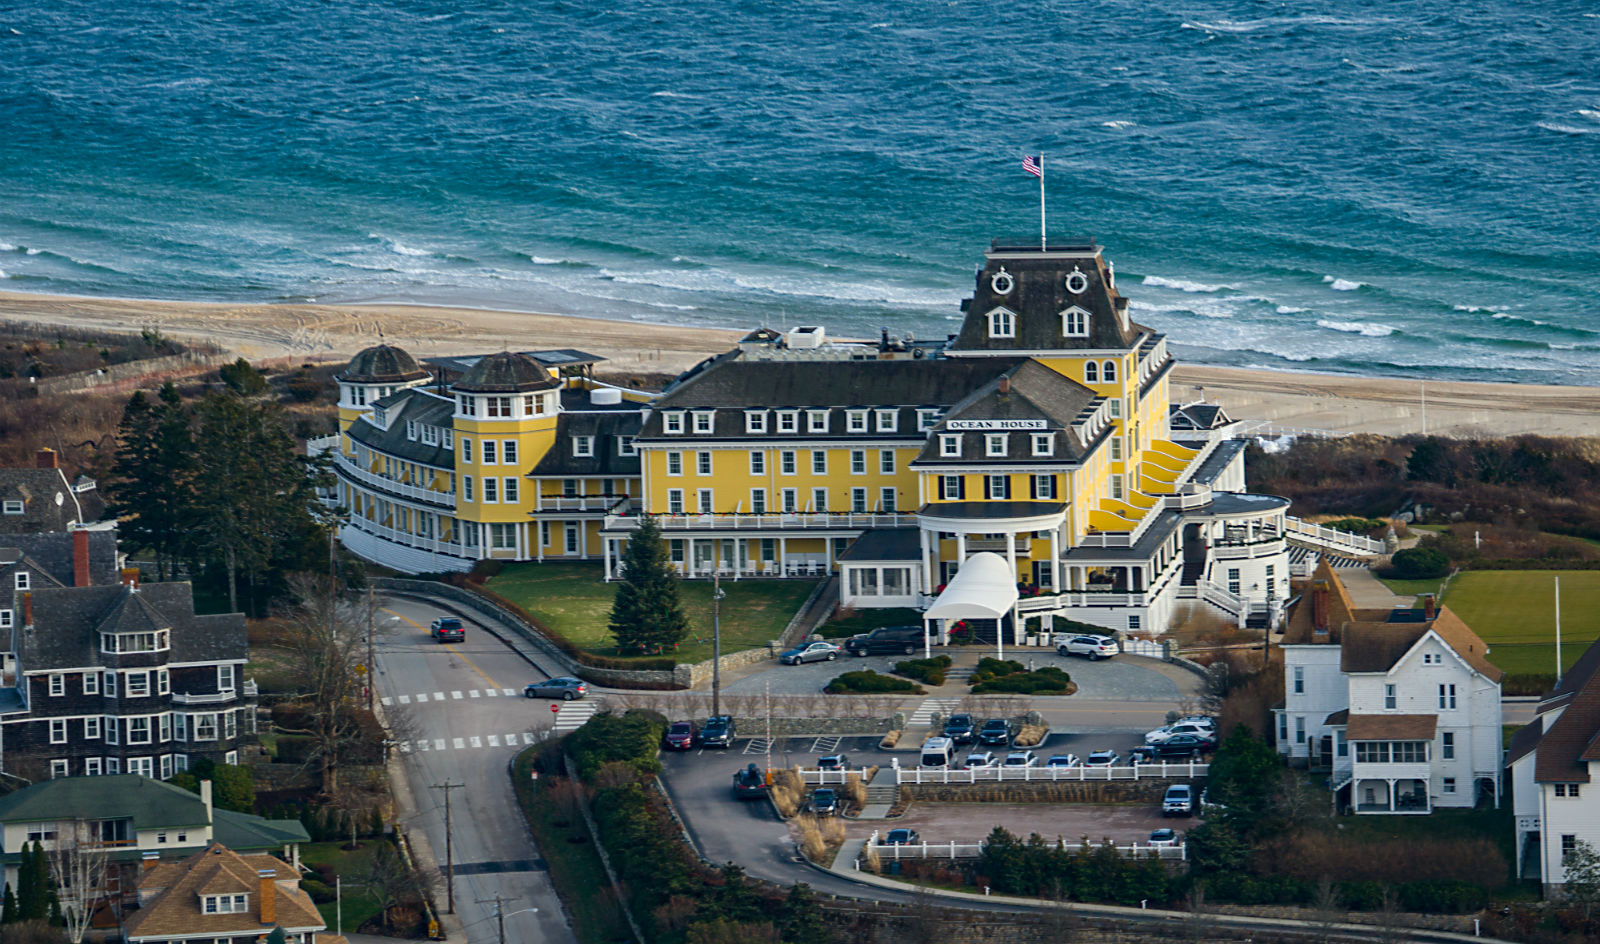 Staying at Westerly's Ocean House